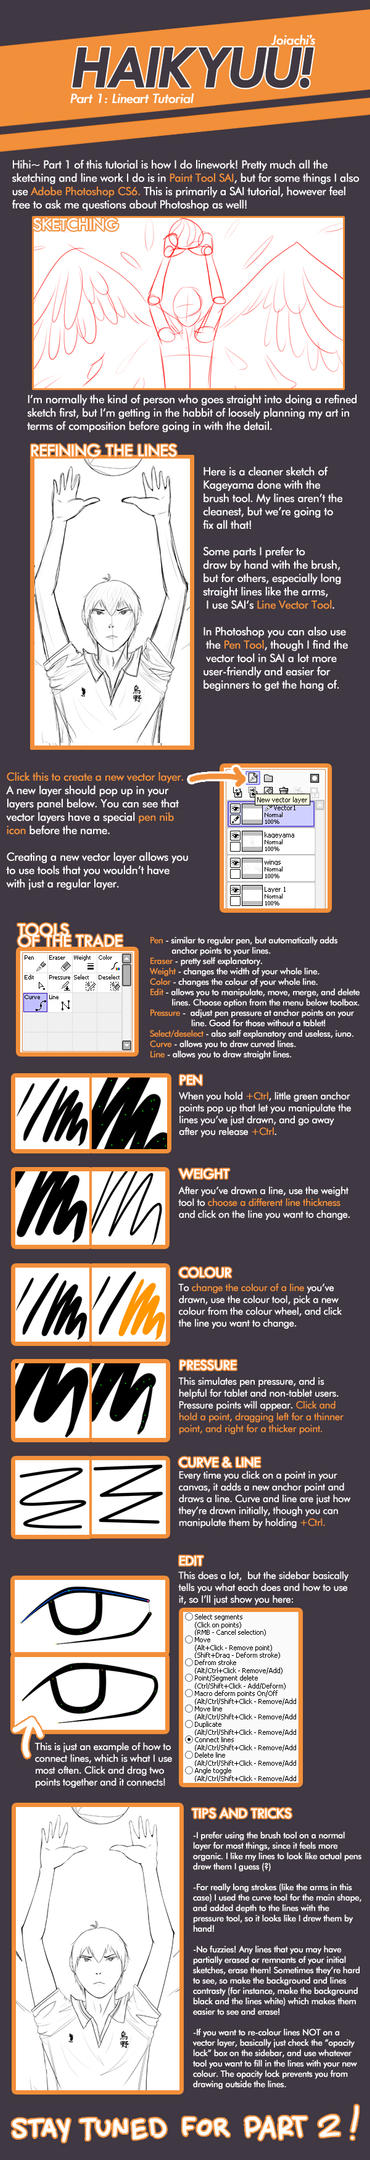 Haikyuu! Lineart Tutorial by joiachi